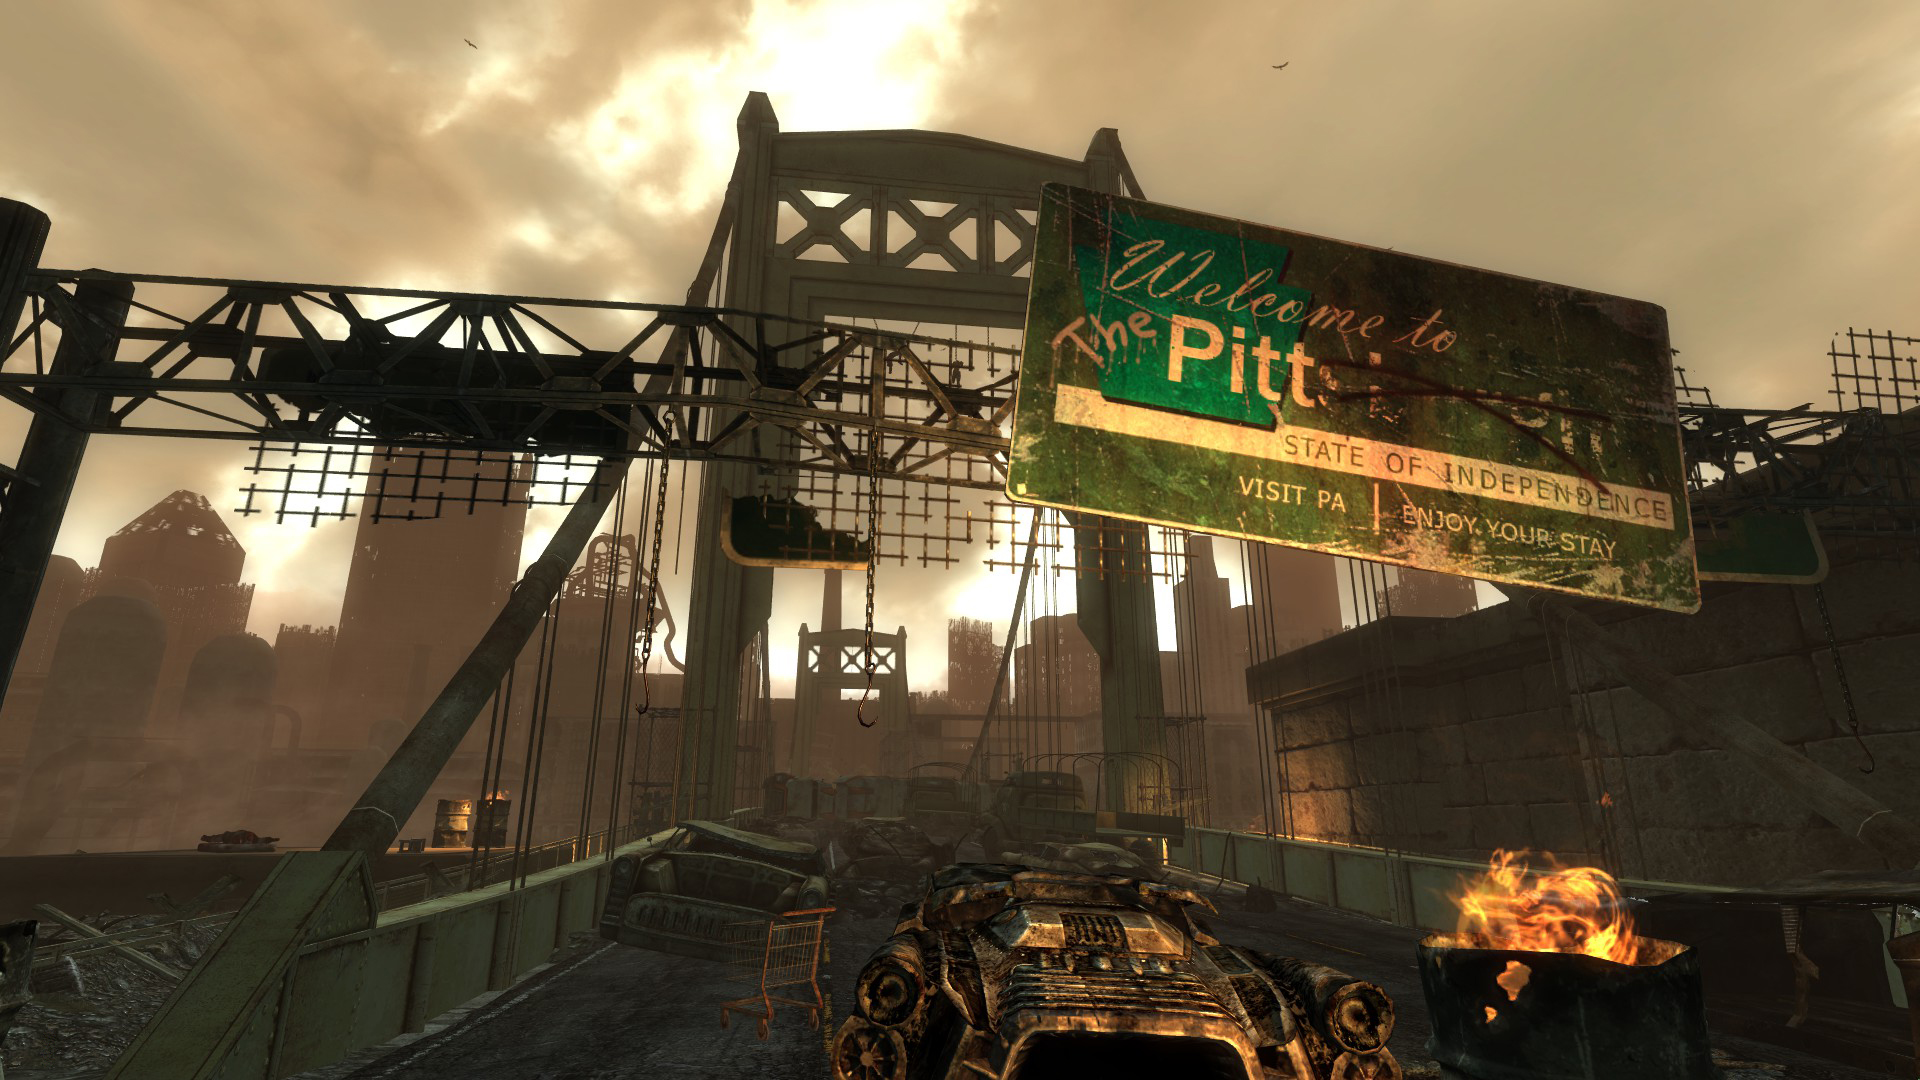 http://img2.wikia.nocookie.net/__cb20120711010004/fallout/images/f/f5/WelcometothePitt.jpg